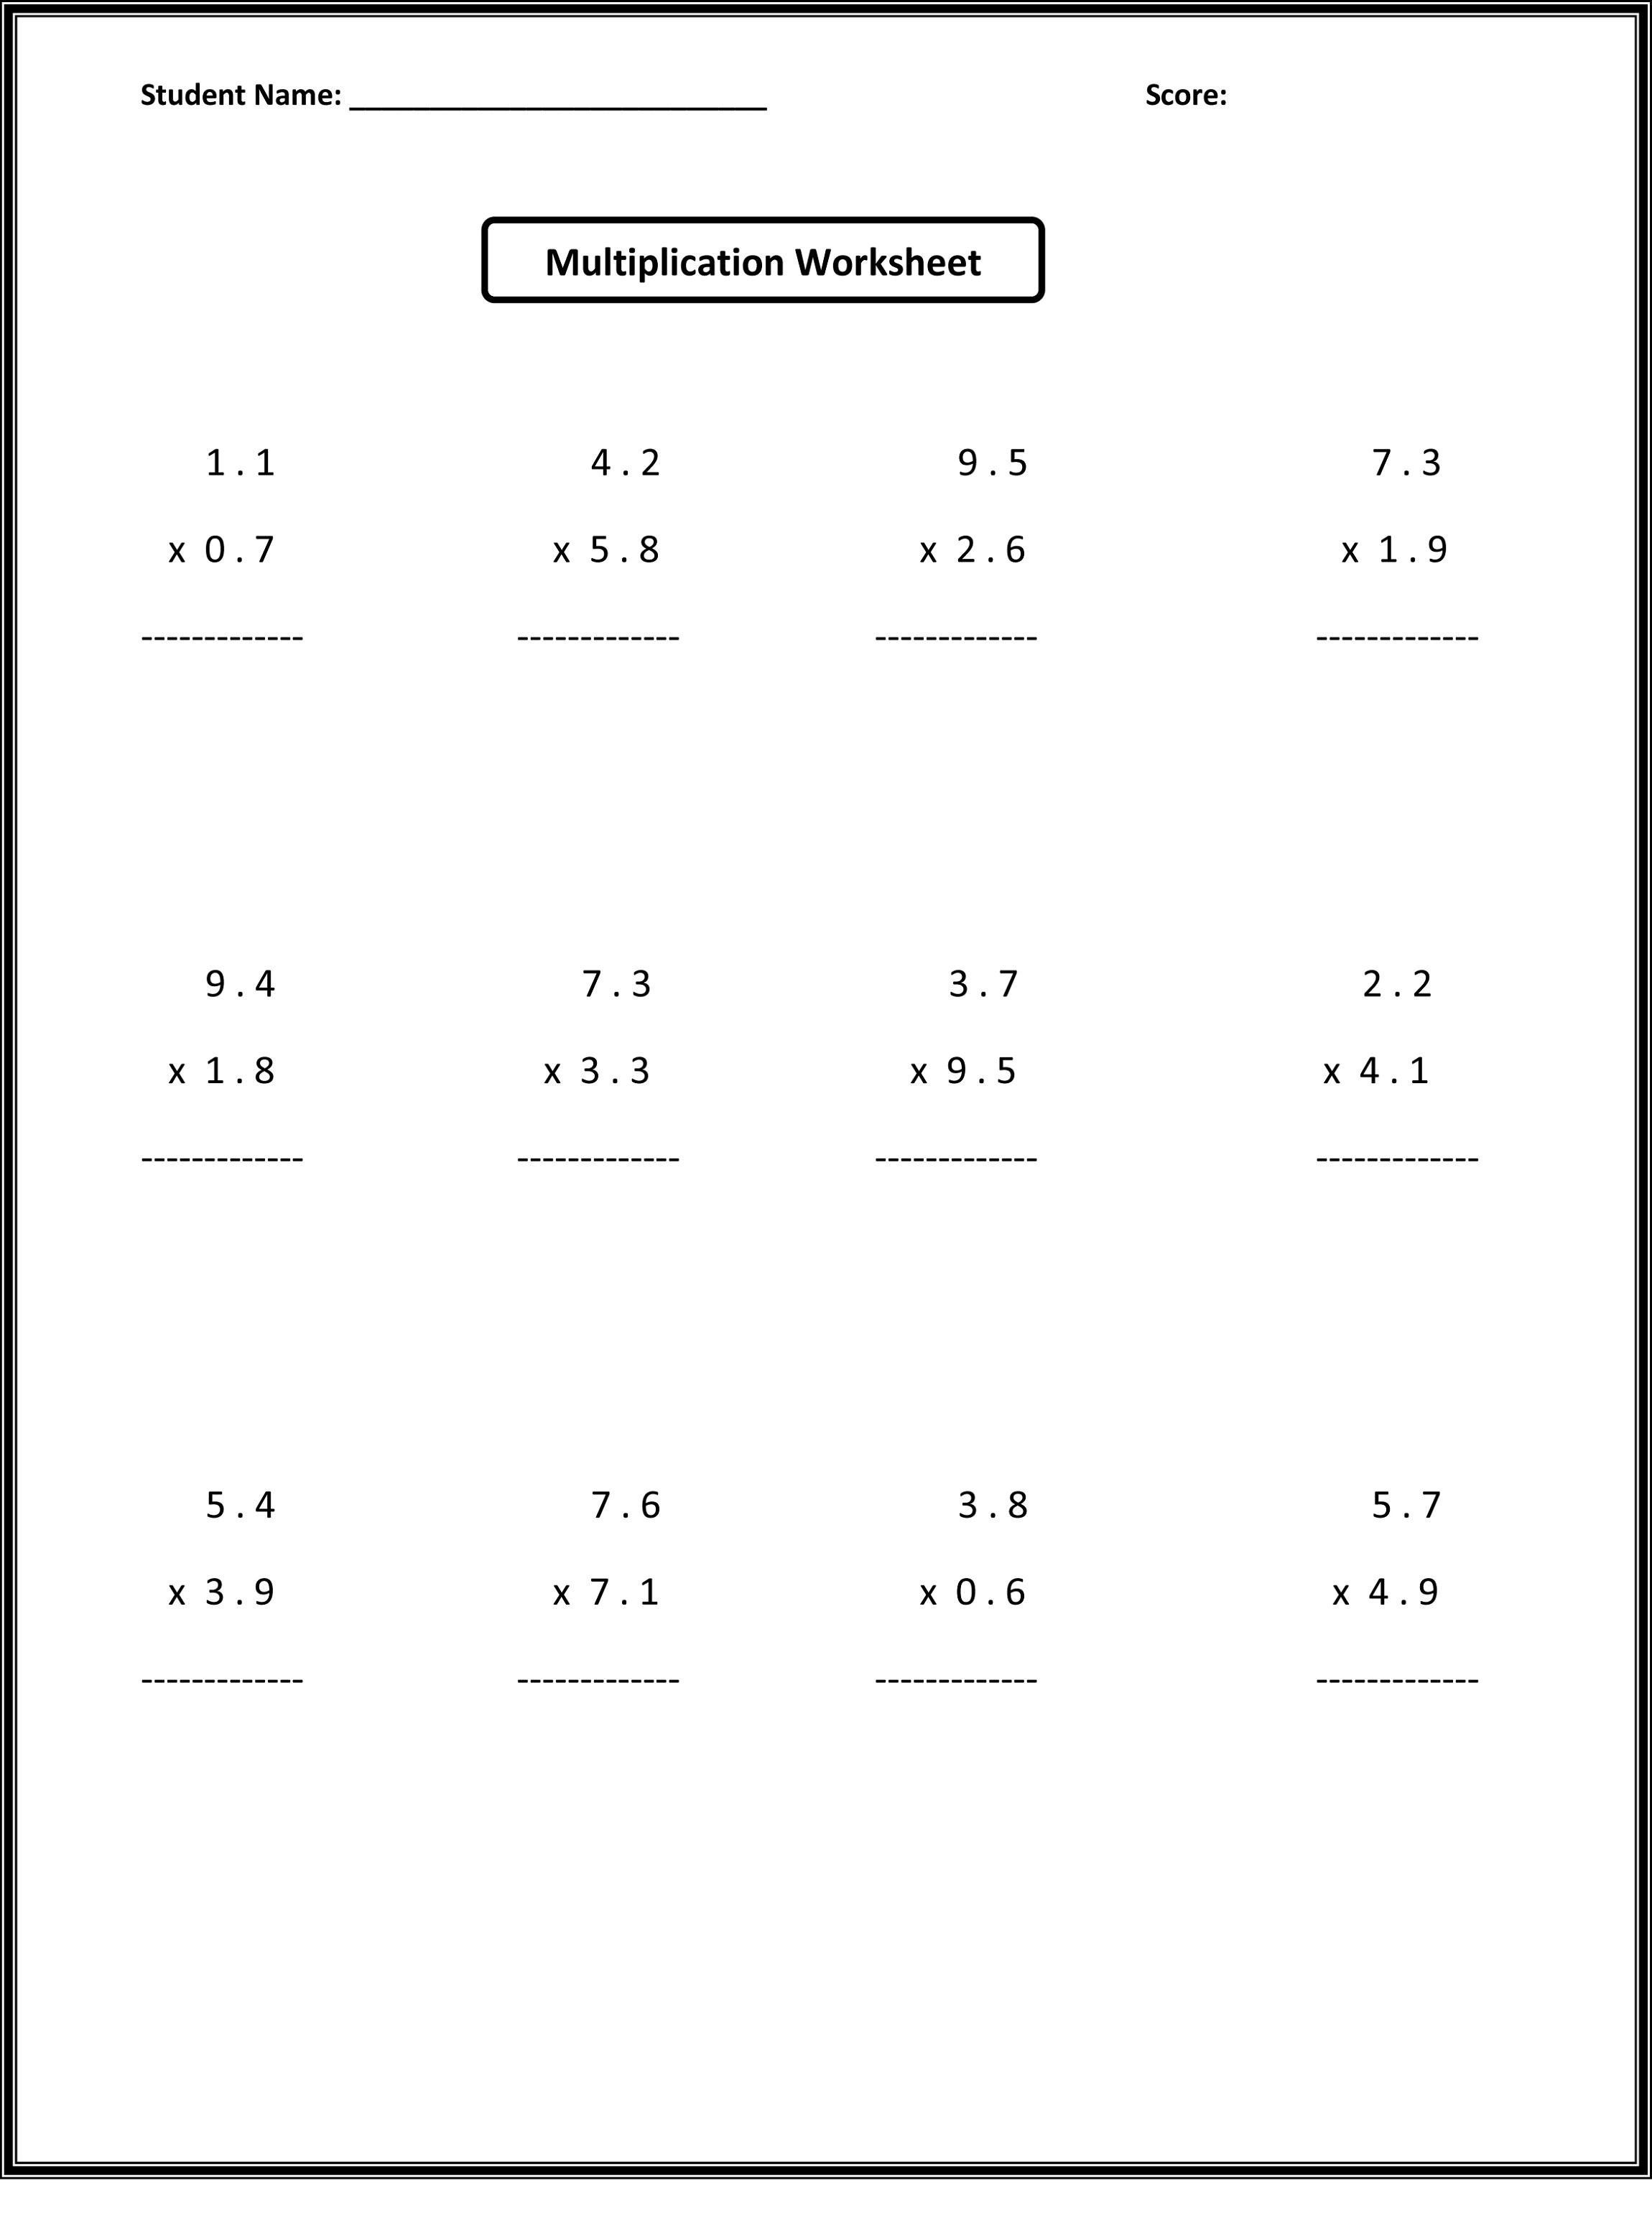 free-6th-grade-math-worksheets-2